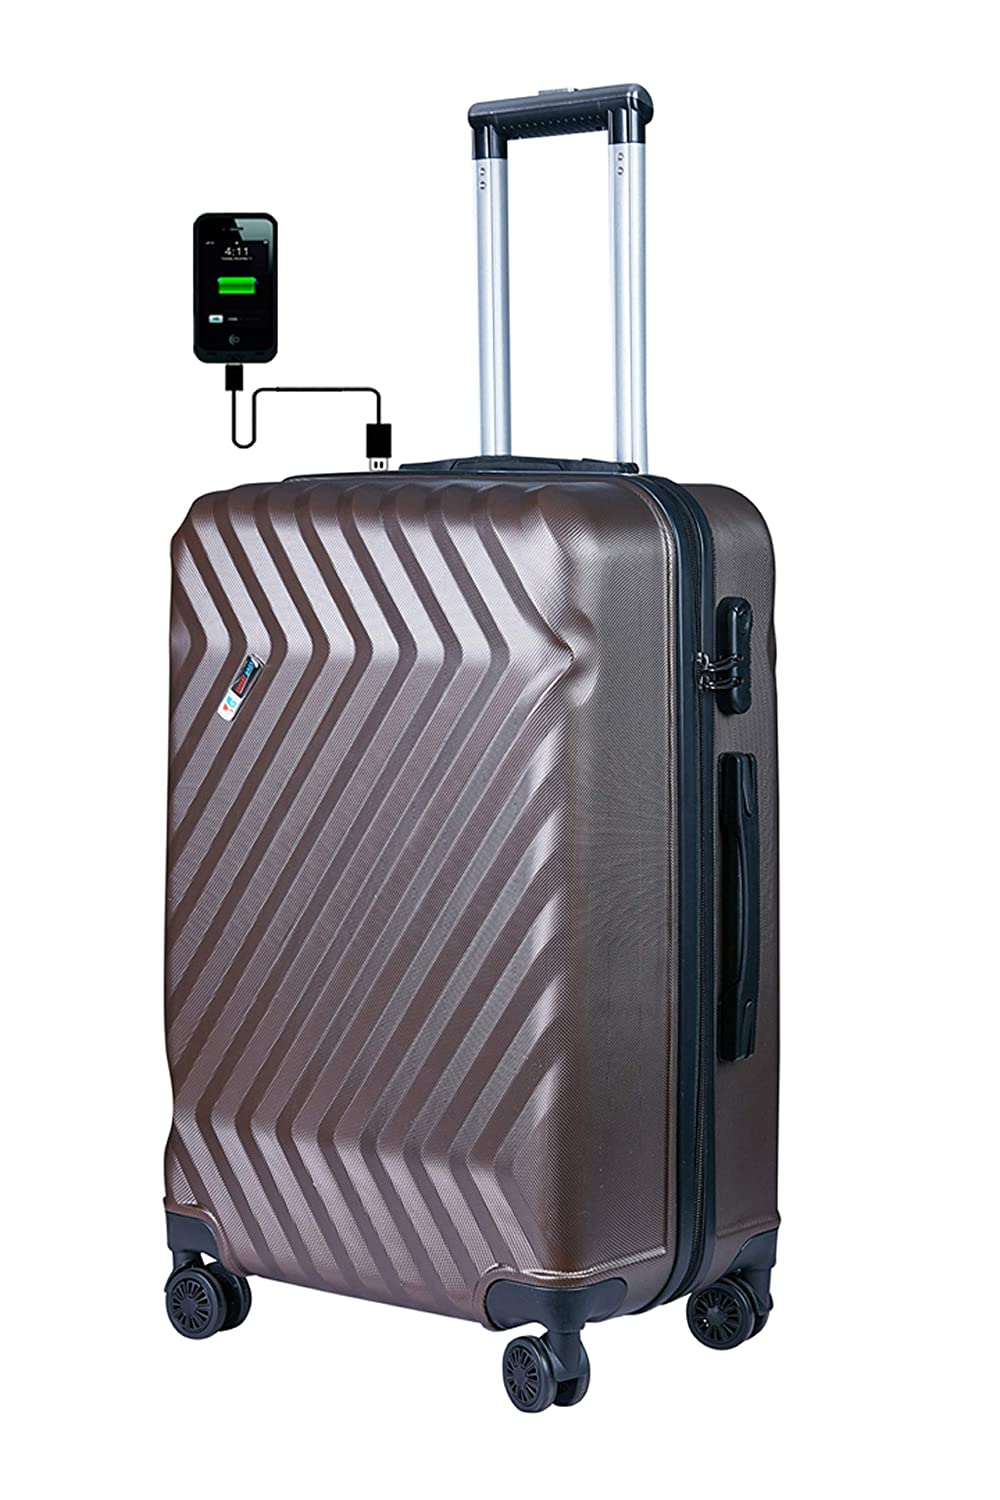 Buy 3G Atlantis Smart Series Unisex USB Charging Polycarbonate 24 Inch, 65  cm 4 Wheel Trolley Luggage Check in Size Suitcase (Brown) at Amazon.in